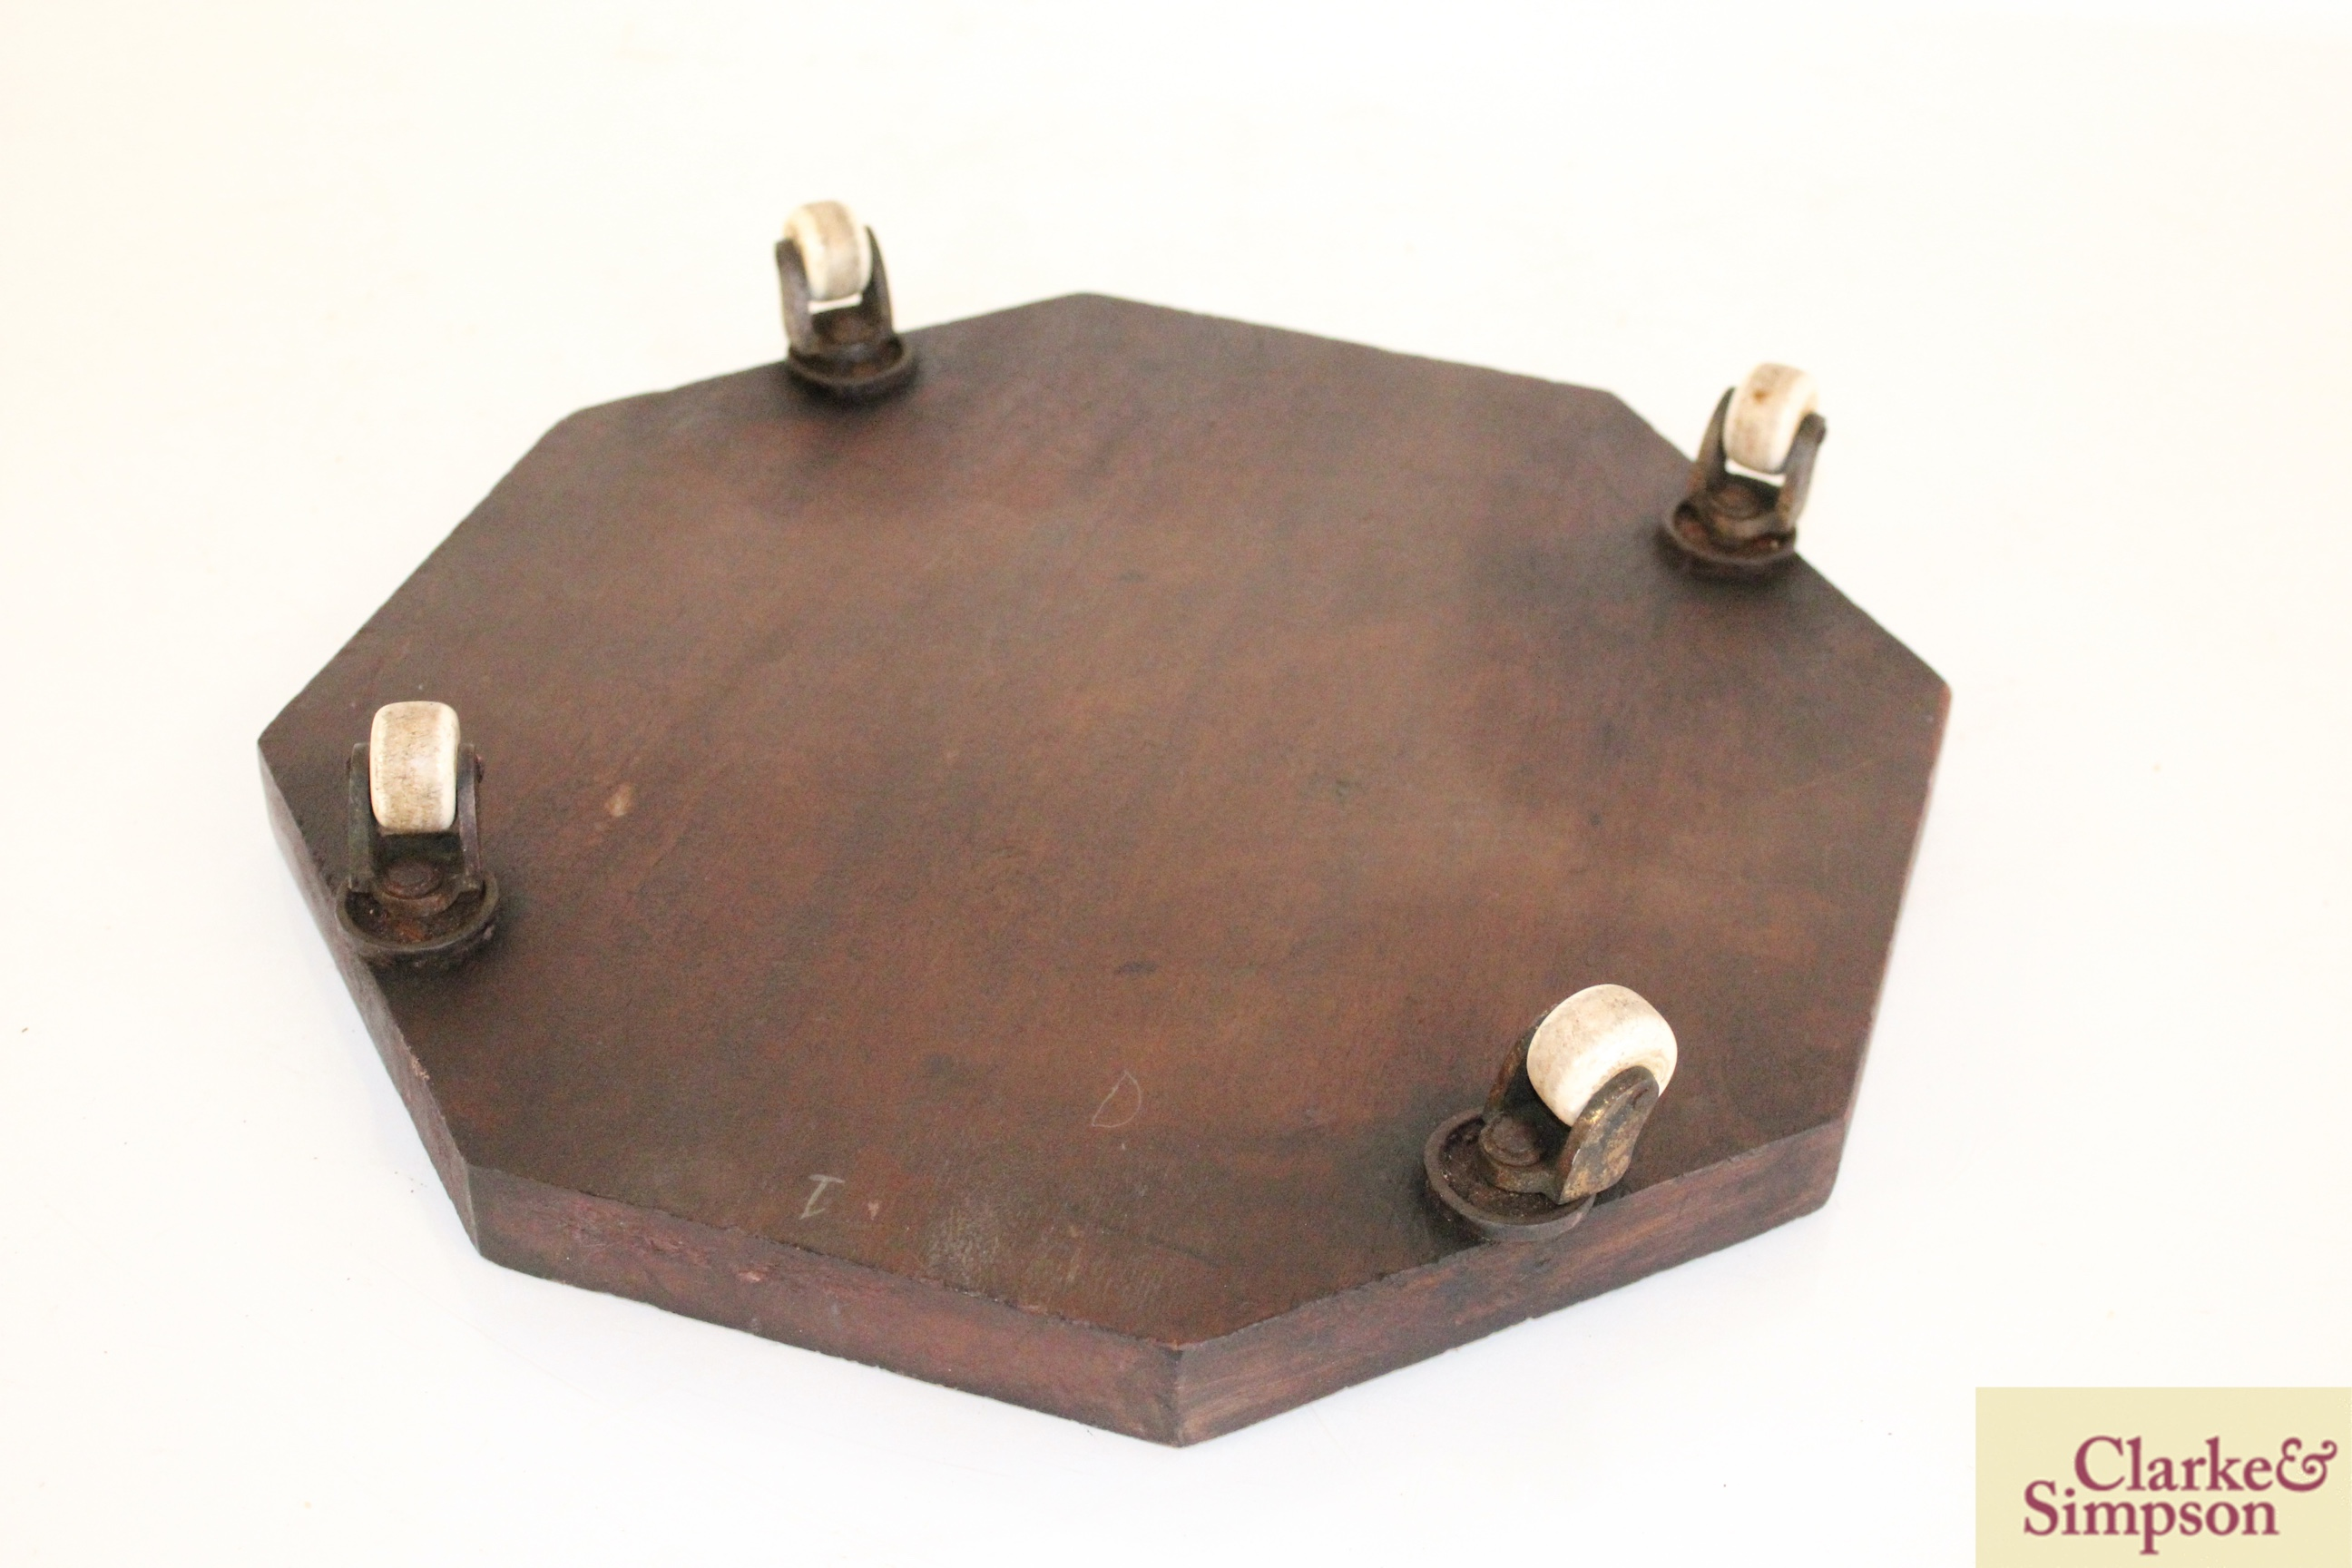 An early 19th Century octagonal cheese coaster on f - Image 4 of 4